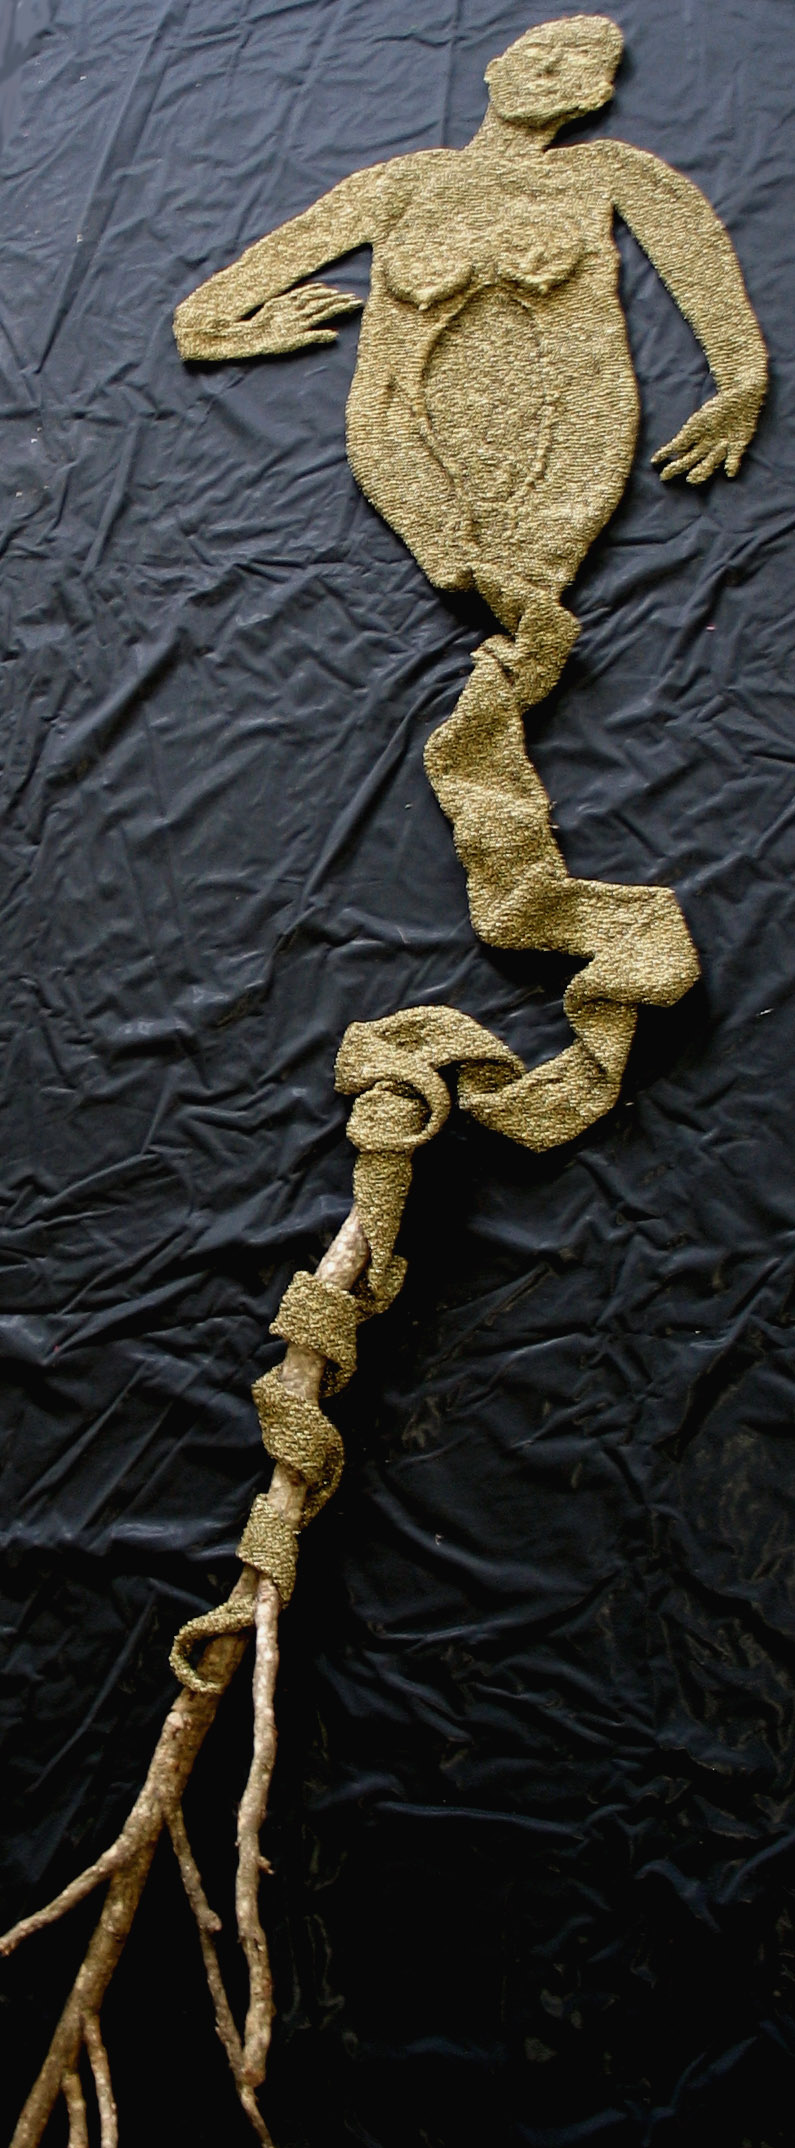 Kate Just, Shed That Skin, 2008 Metallic thread, found branch 350 x 80 x 5cm Documentation: Kate Just